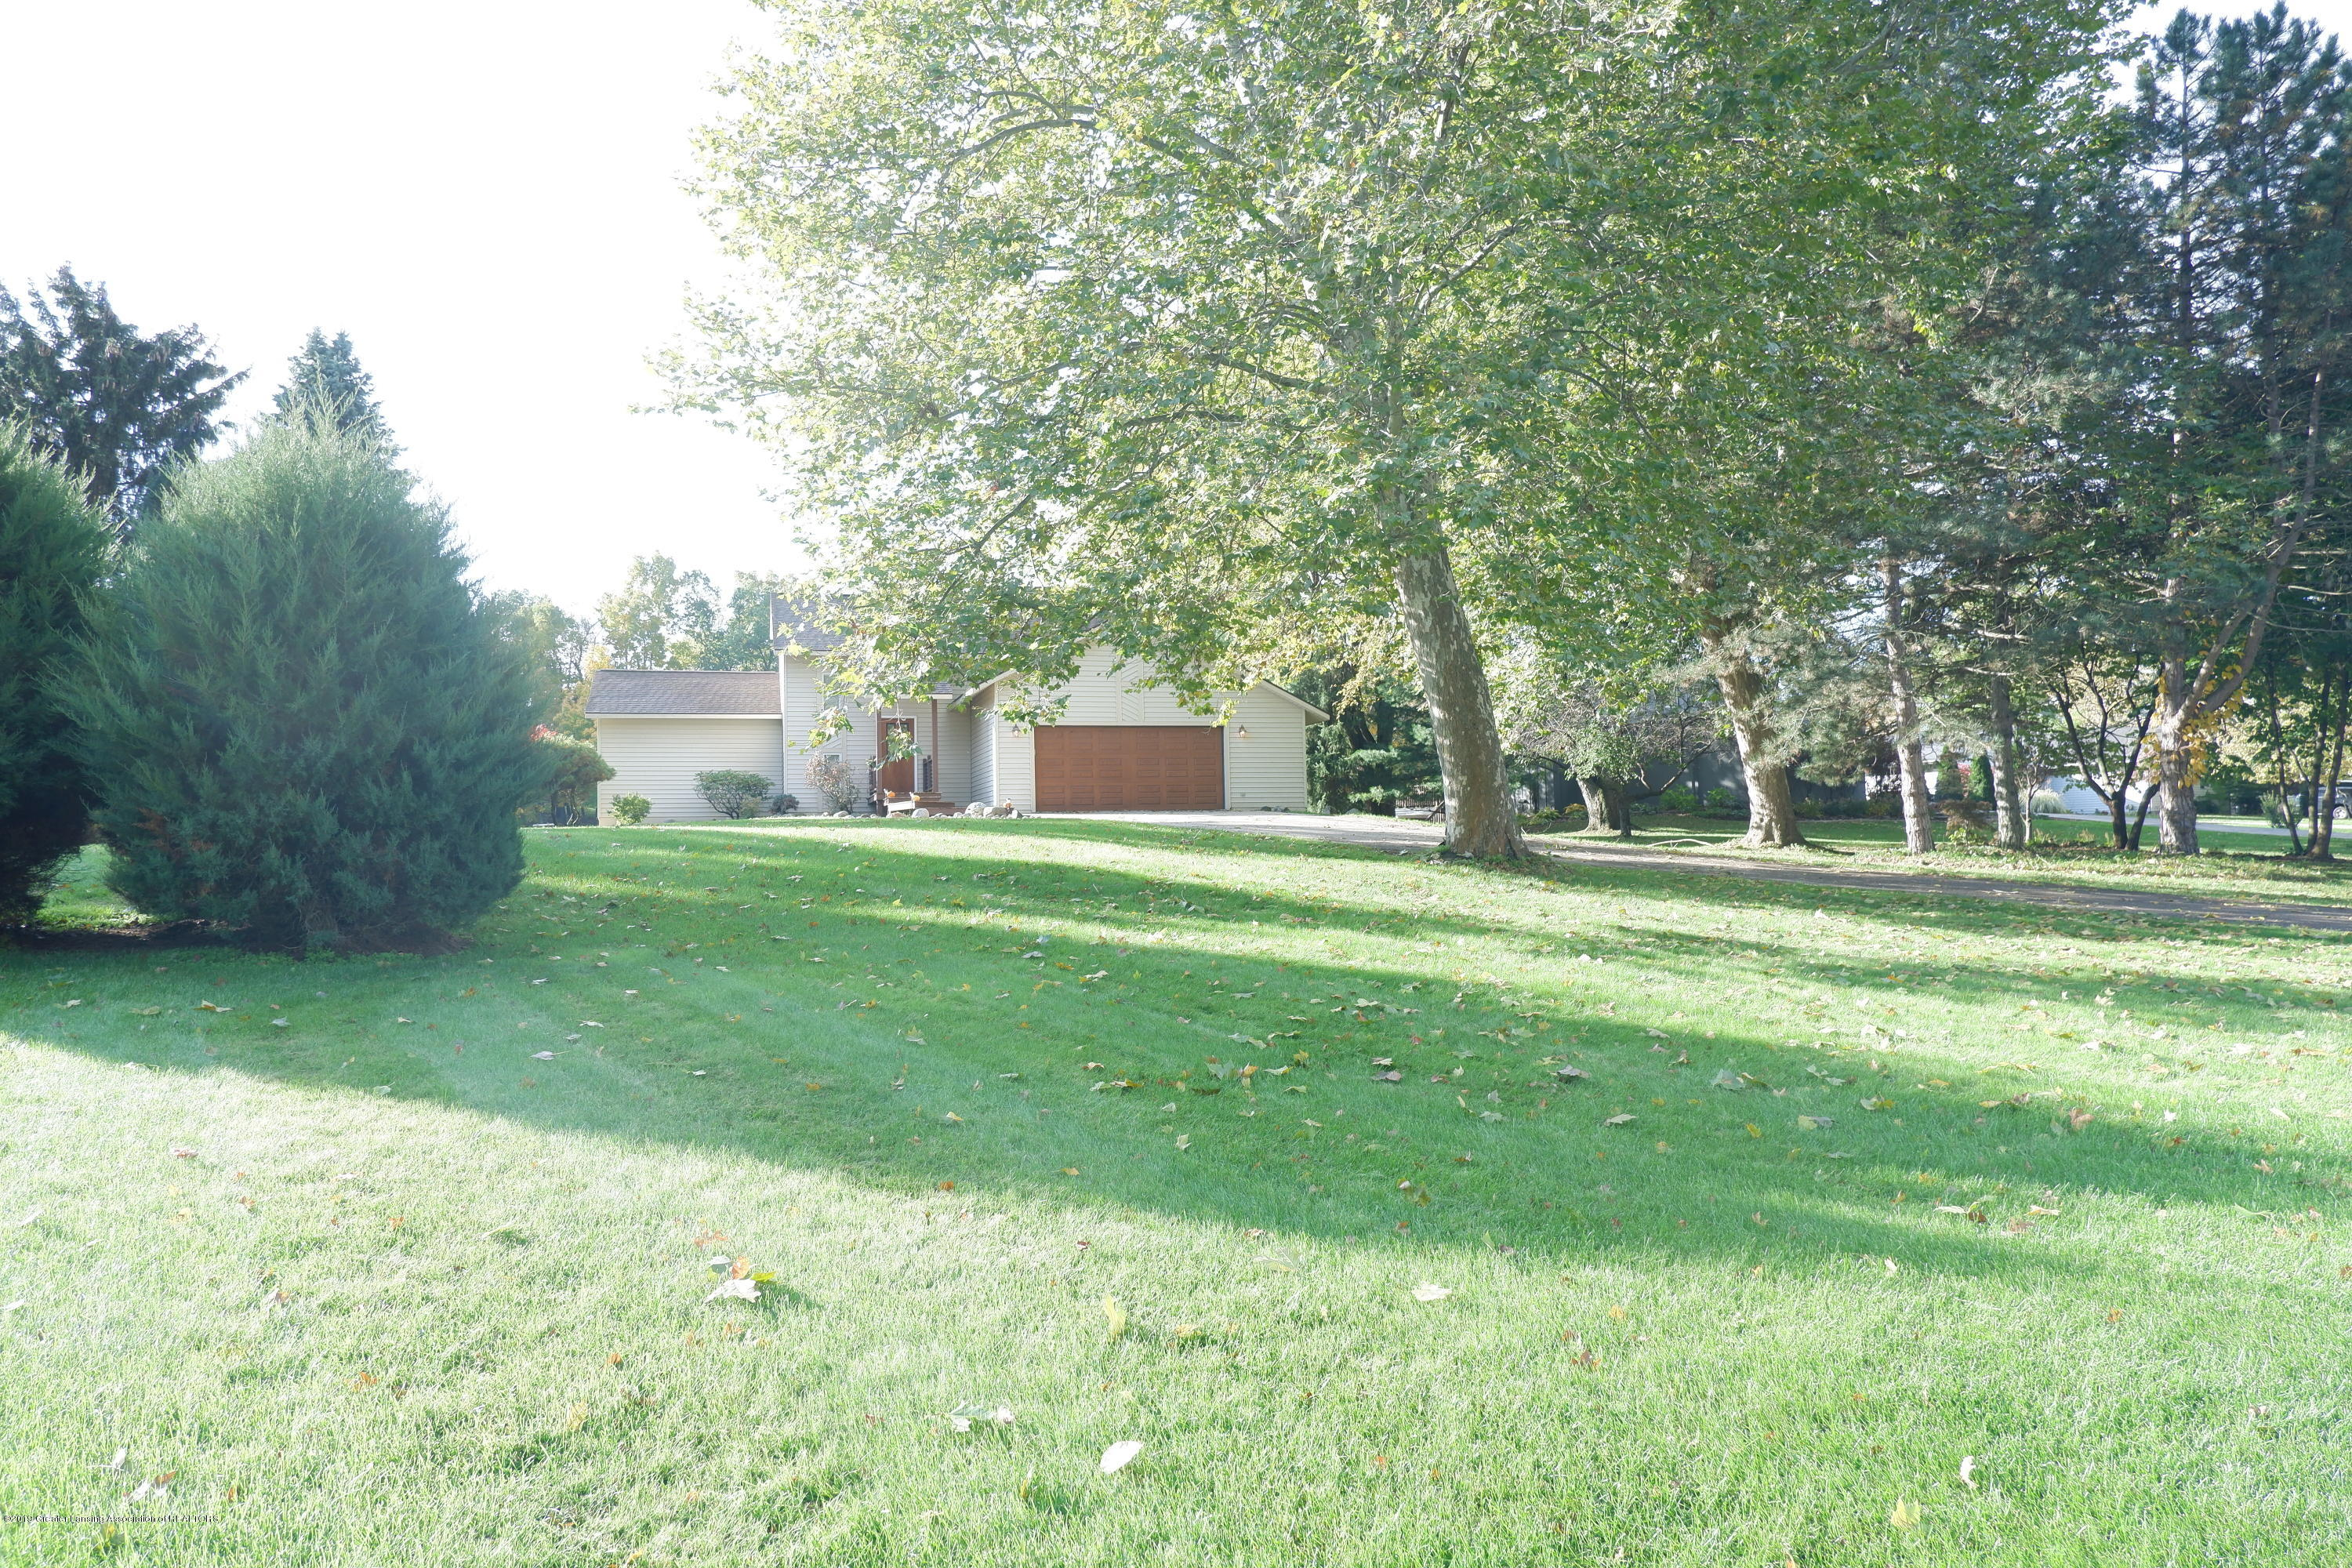 8933 W Scenic Lake Dr - Large .4 acre yard! - 2